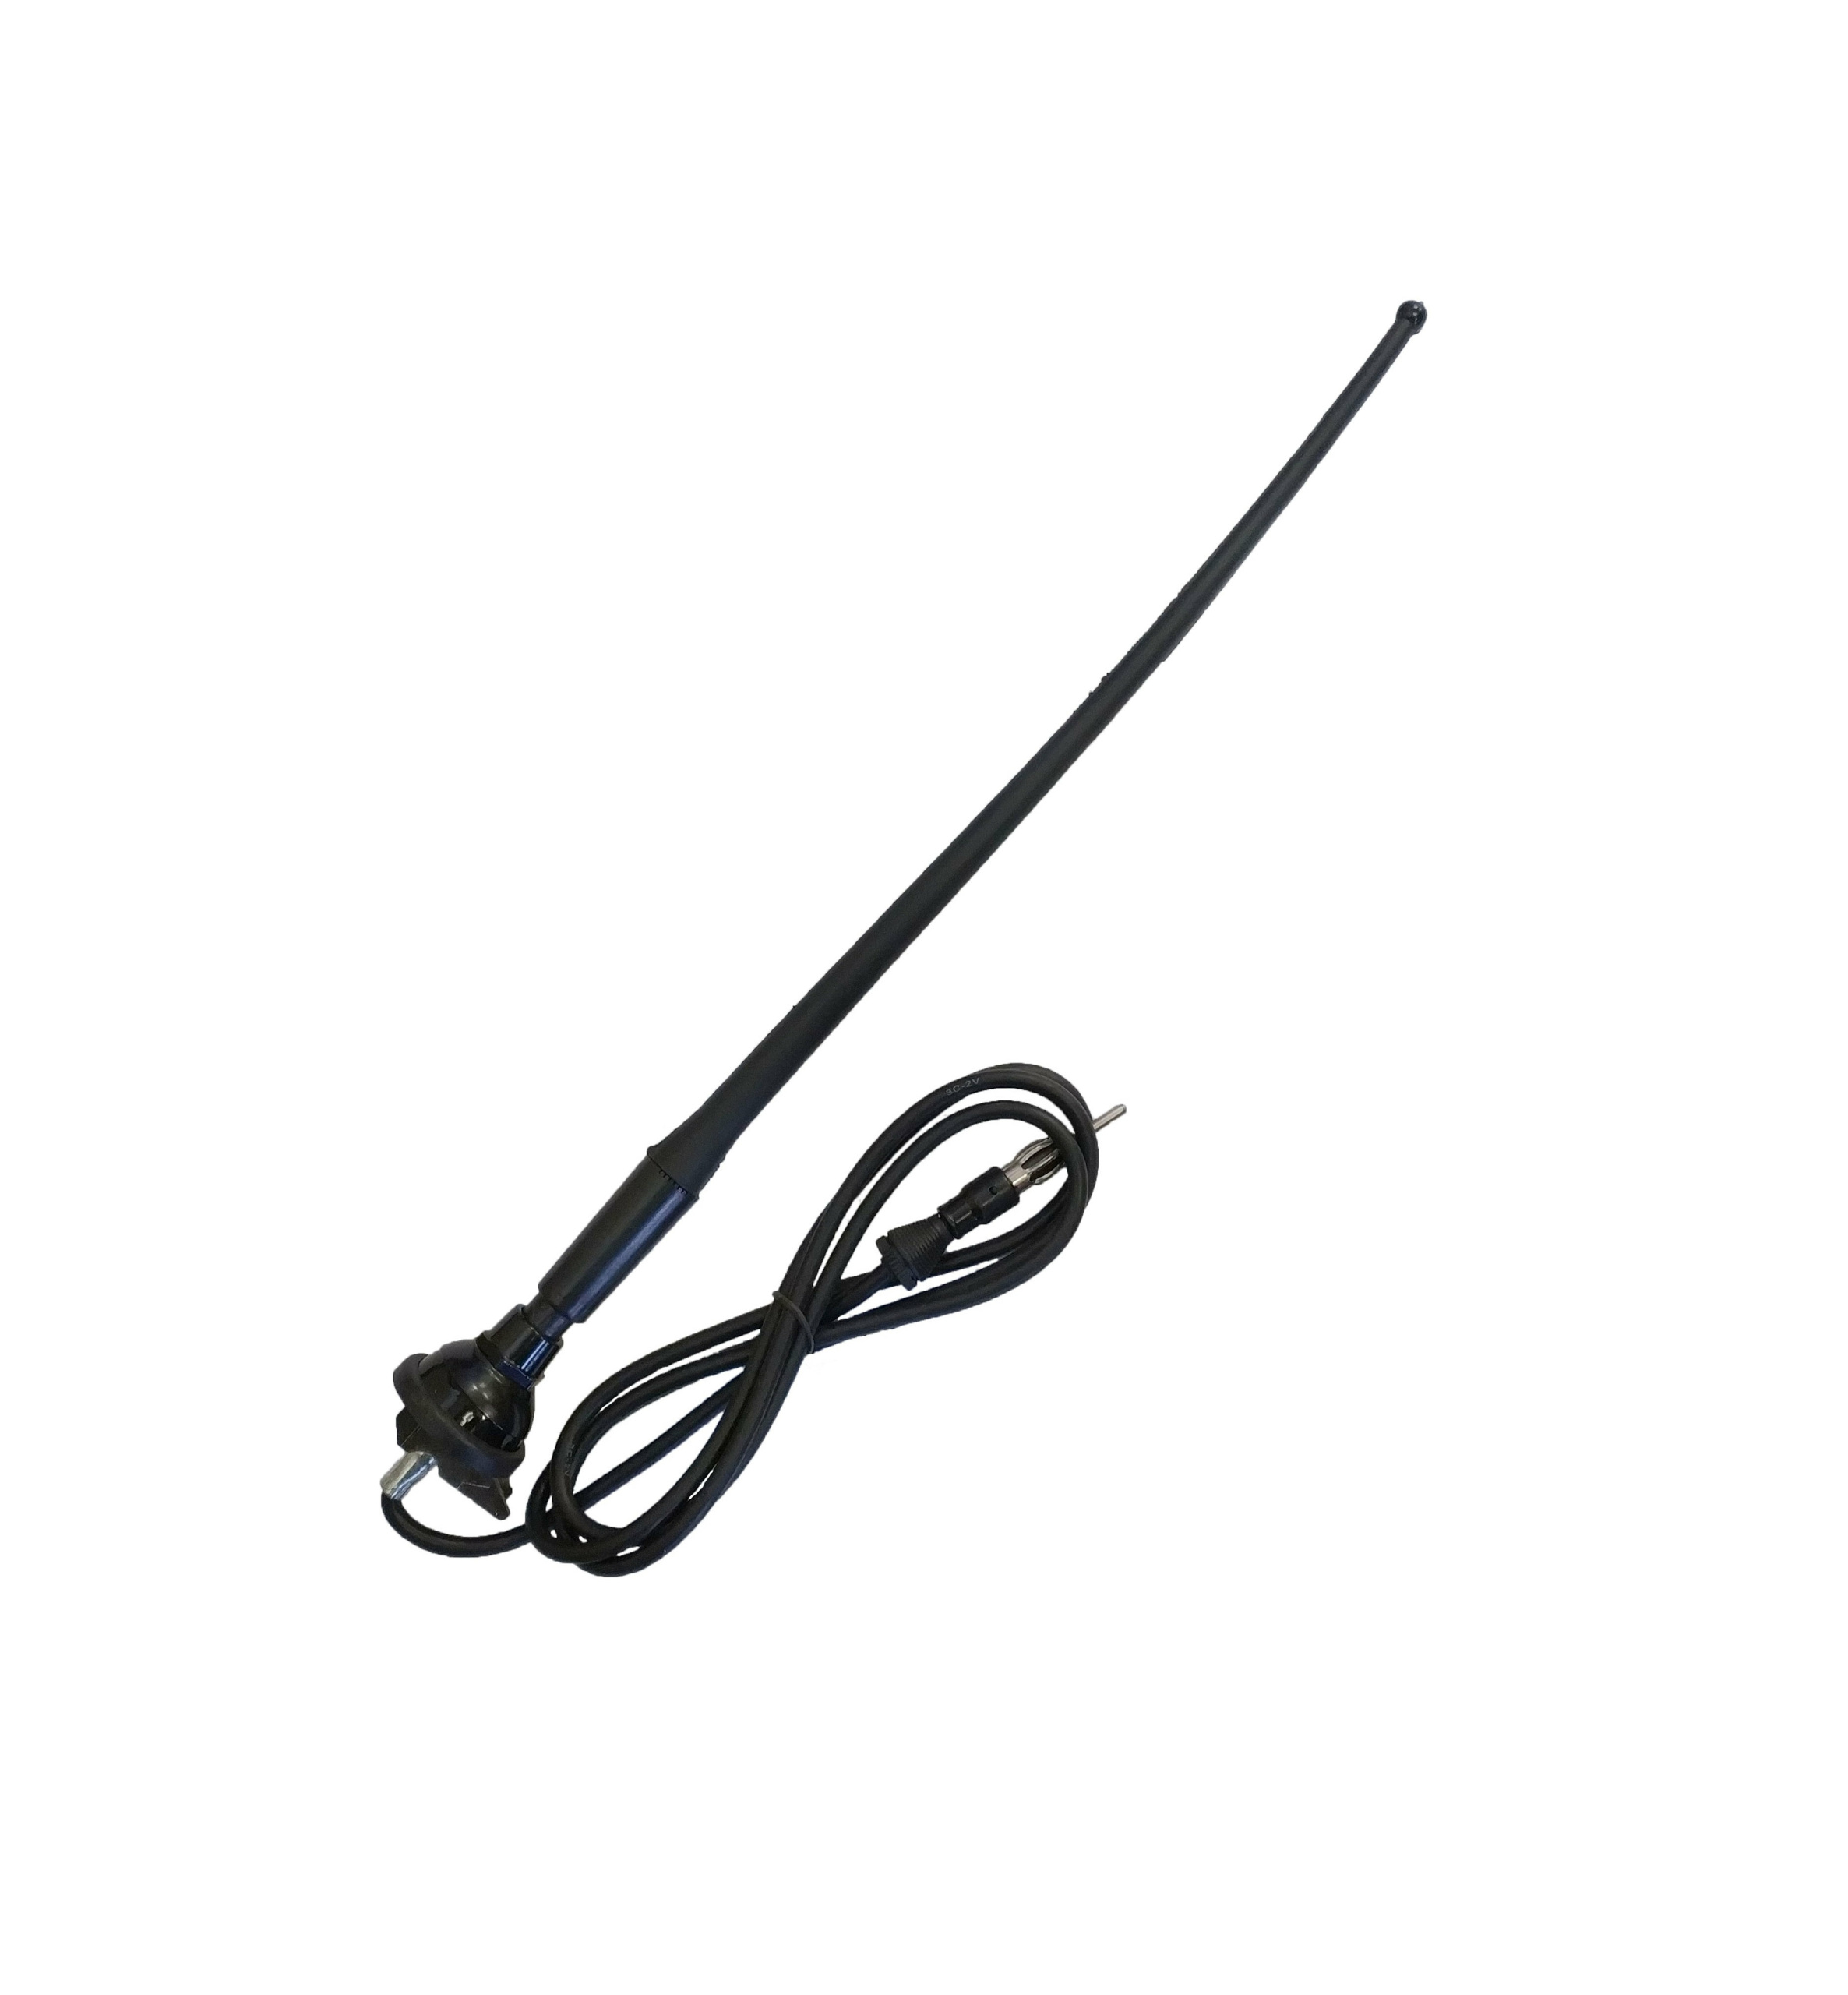 Universal Rubber Top Mount Antenna Ca 516